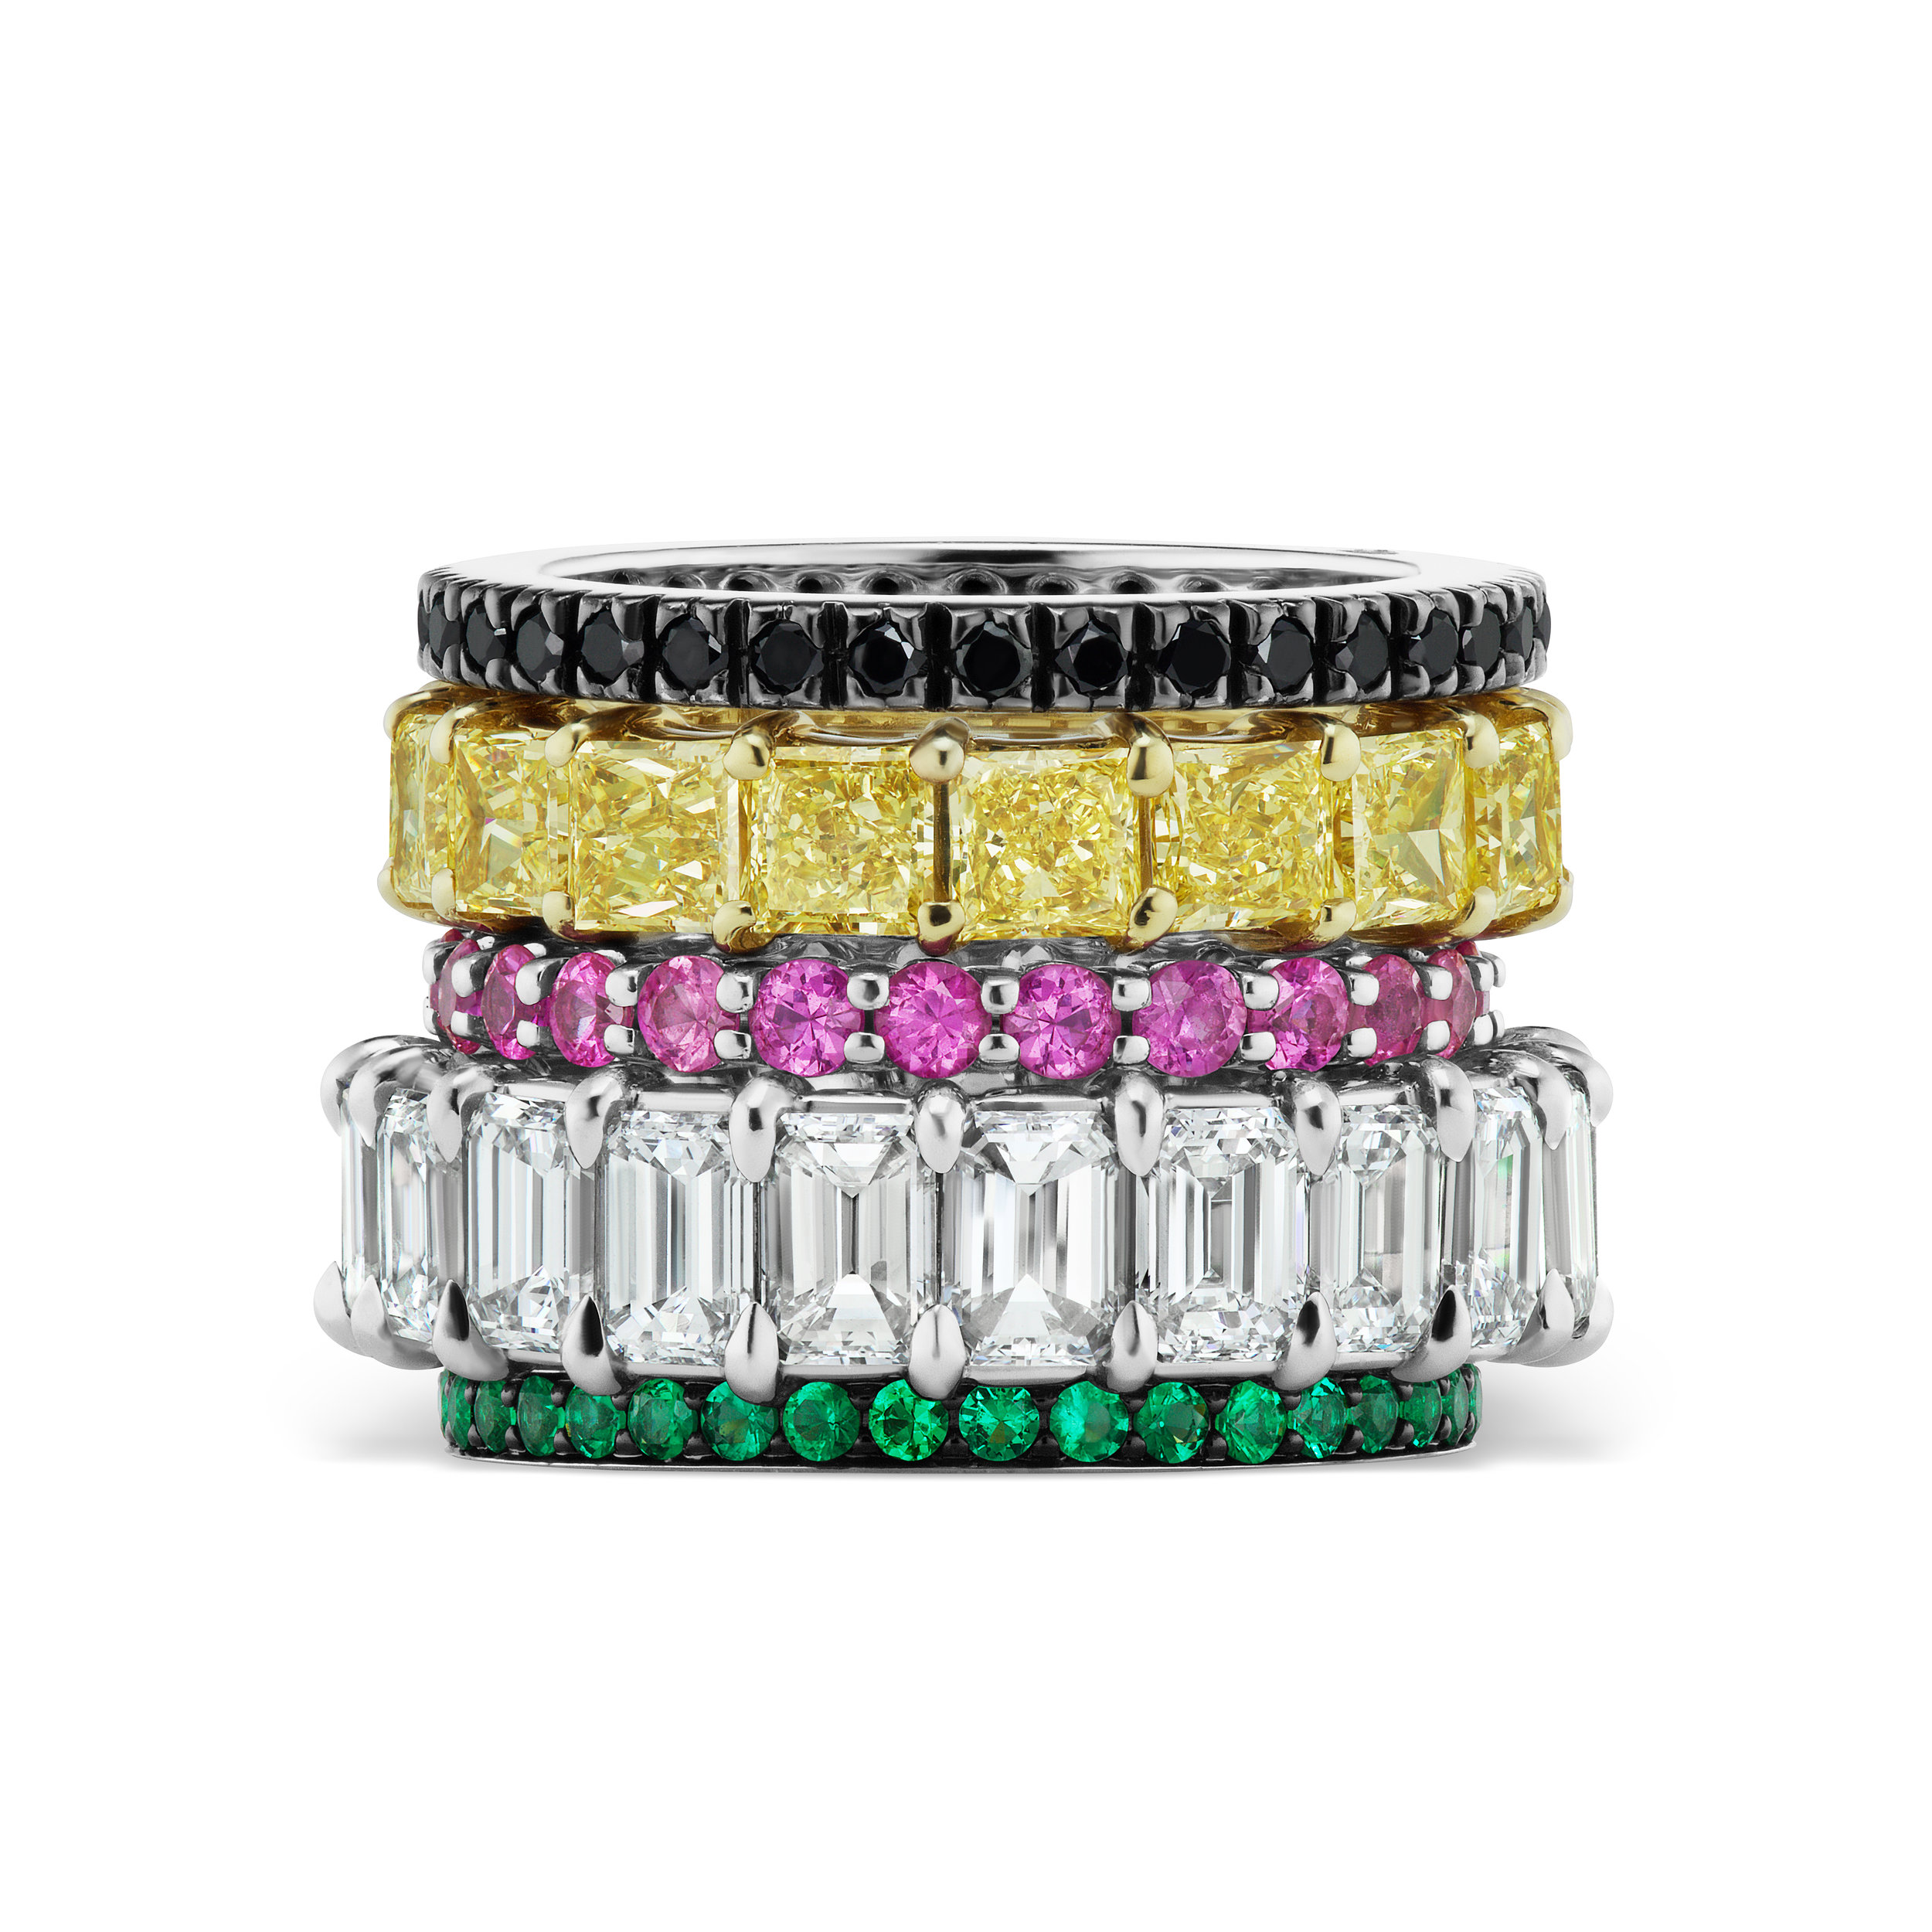 Stack of colored diamond and colored stone bands.